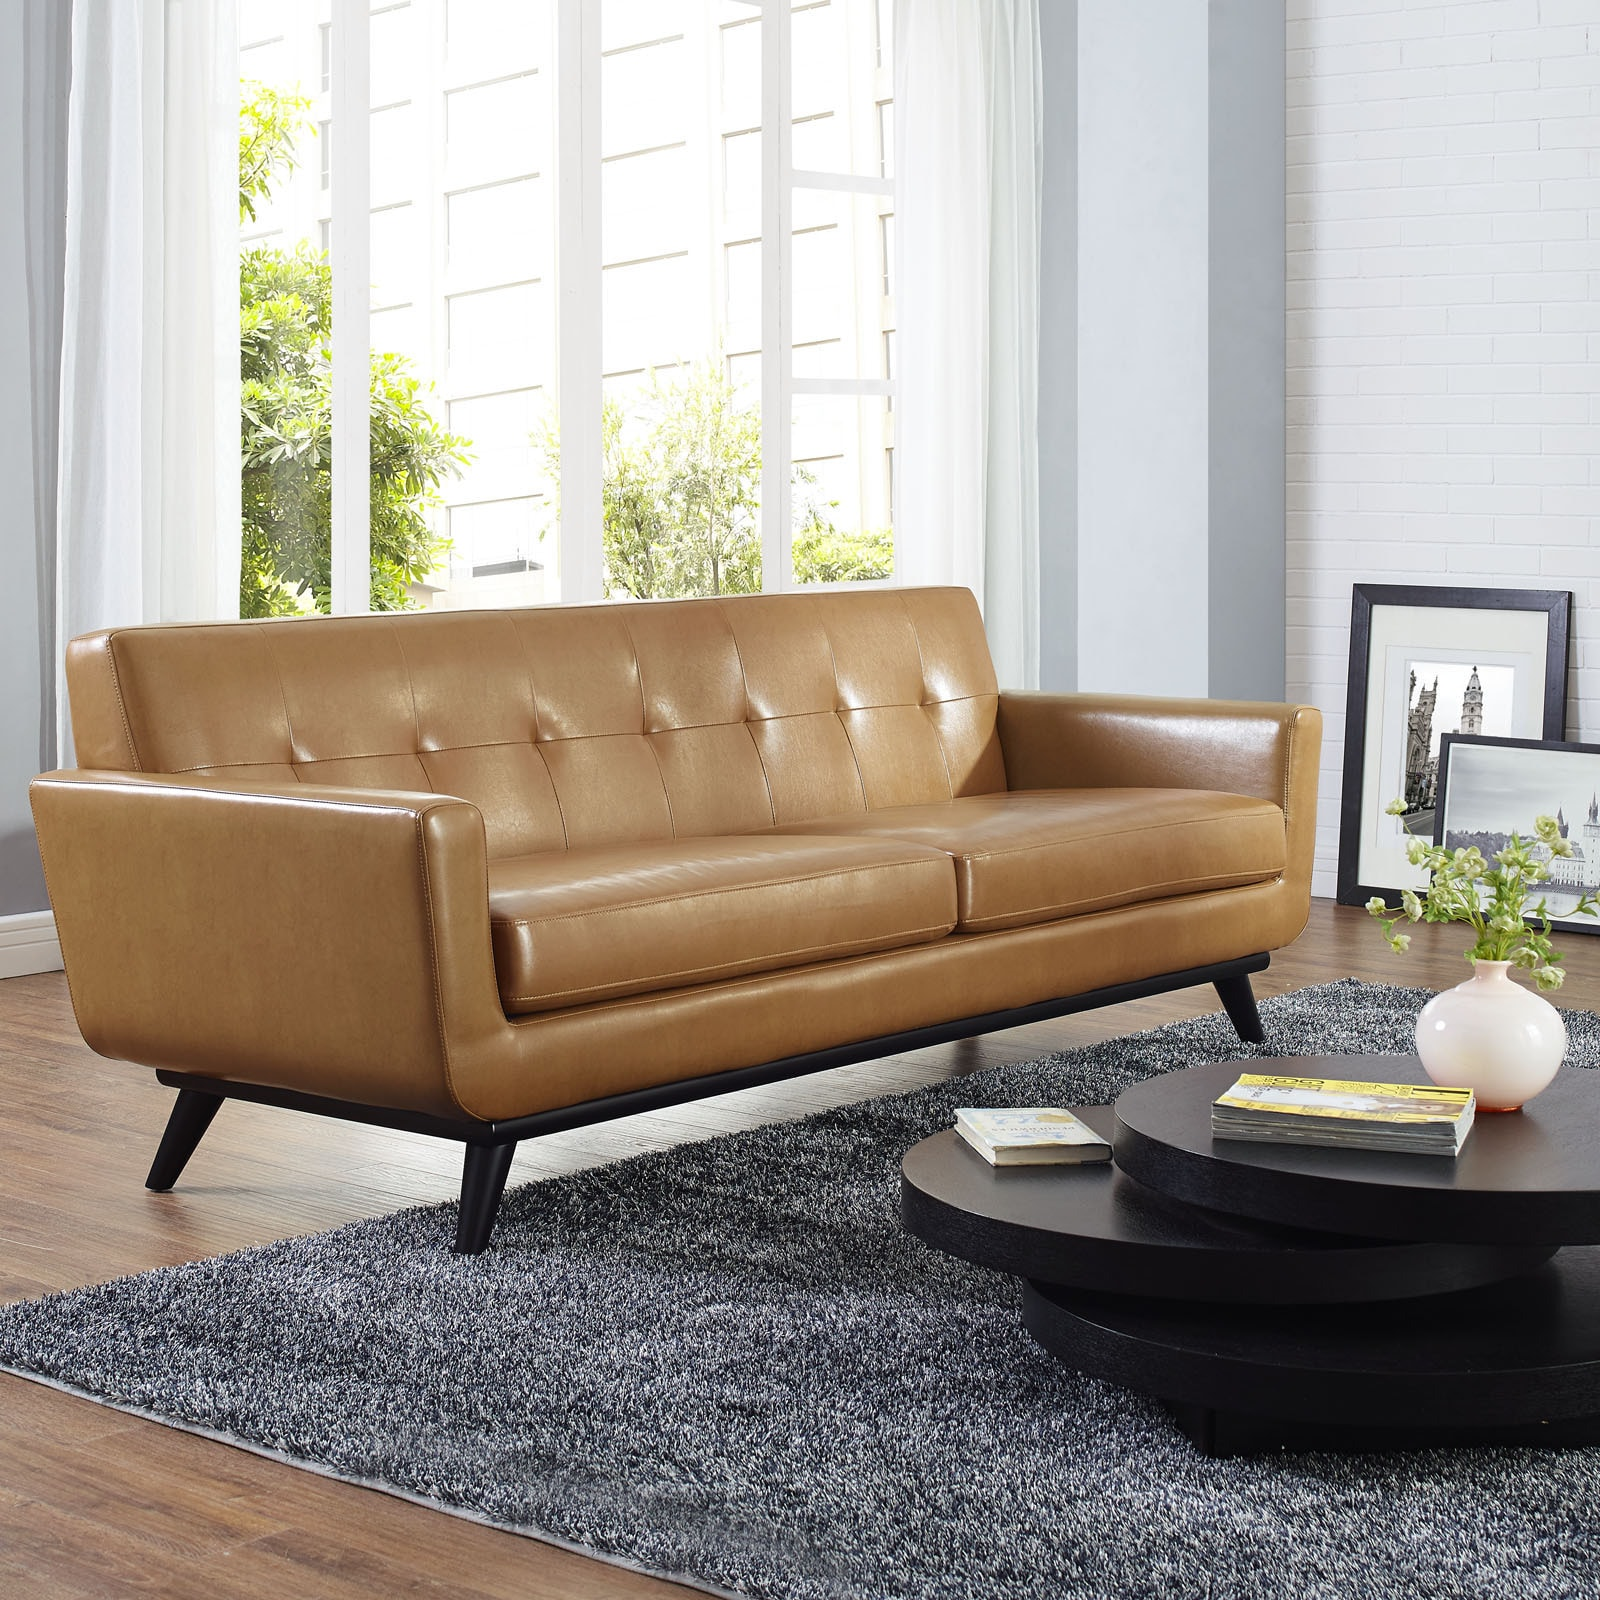 Carson Carrington Ringsaker Tan Leather Mid Century Sofa